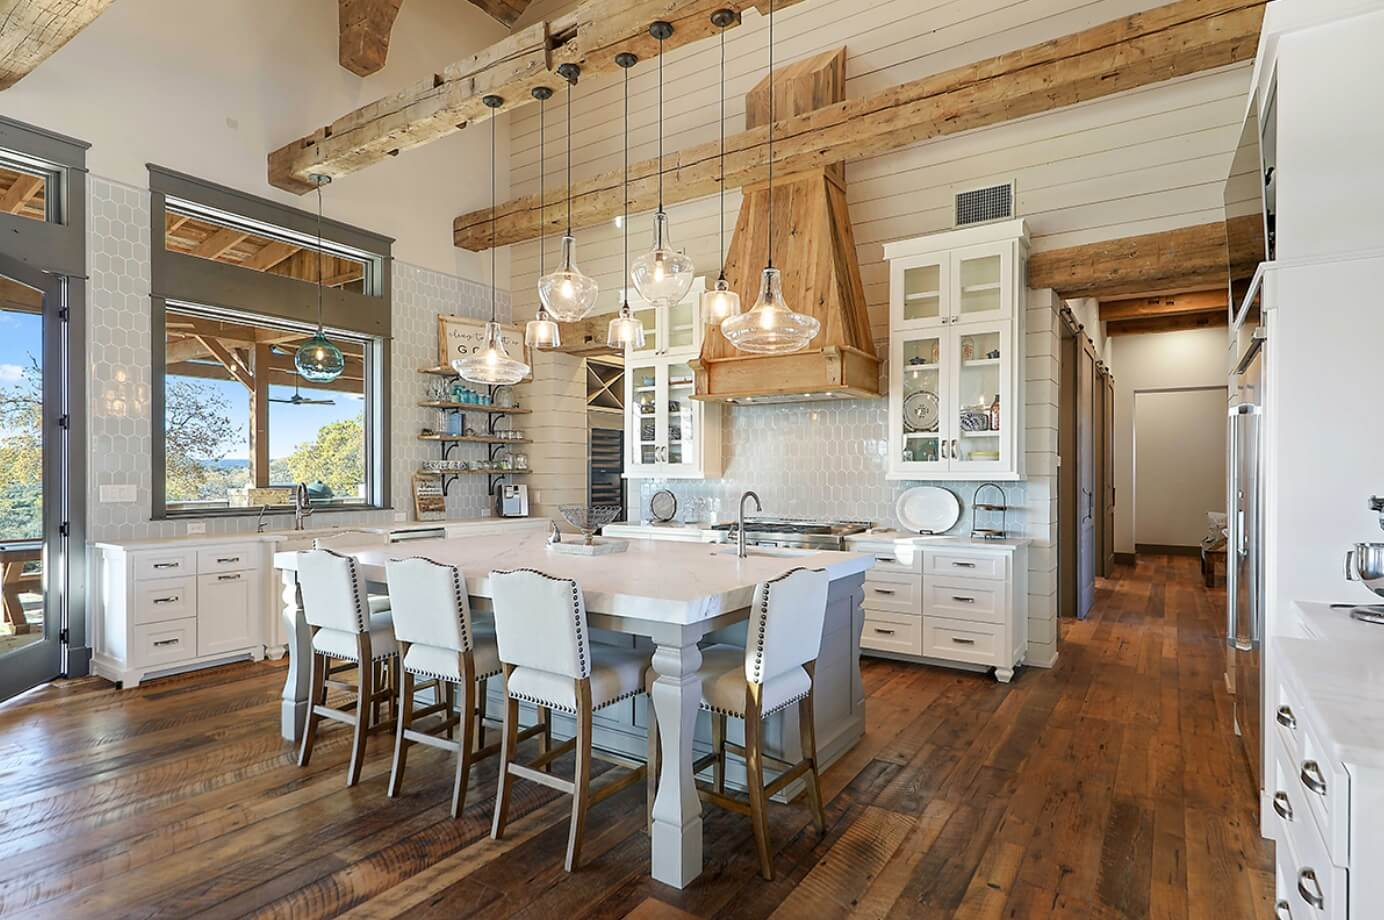 Farmhouse design style kitchen